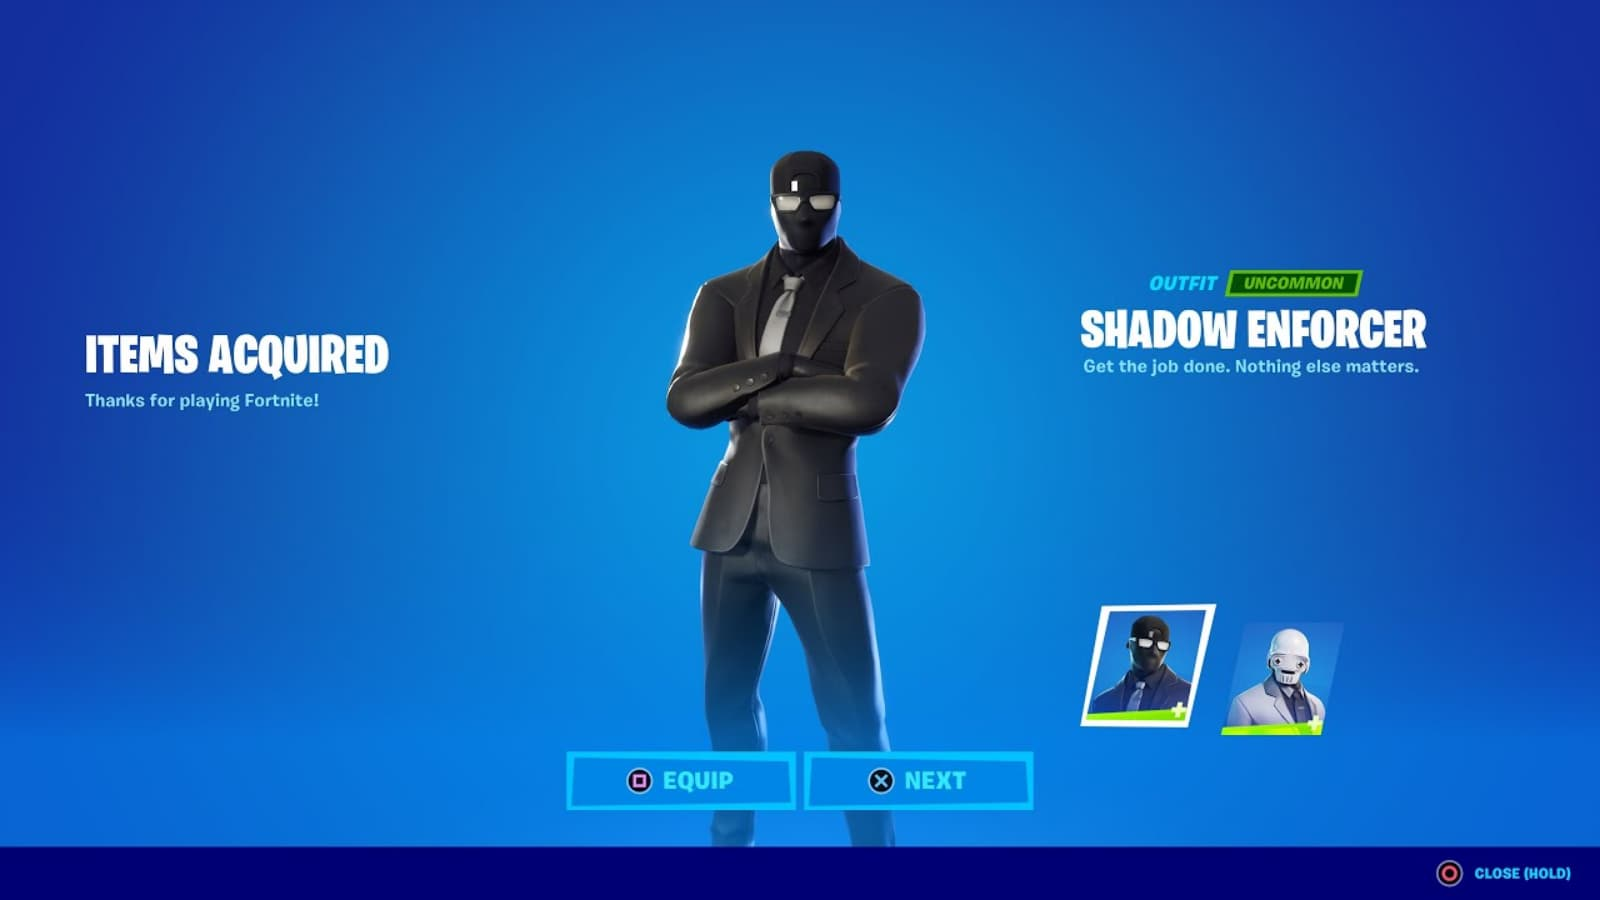 How to get the new Fortnite Henchman Bundle in Season 7